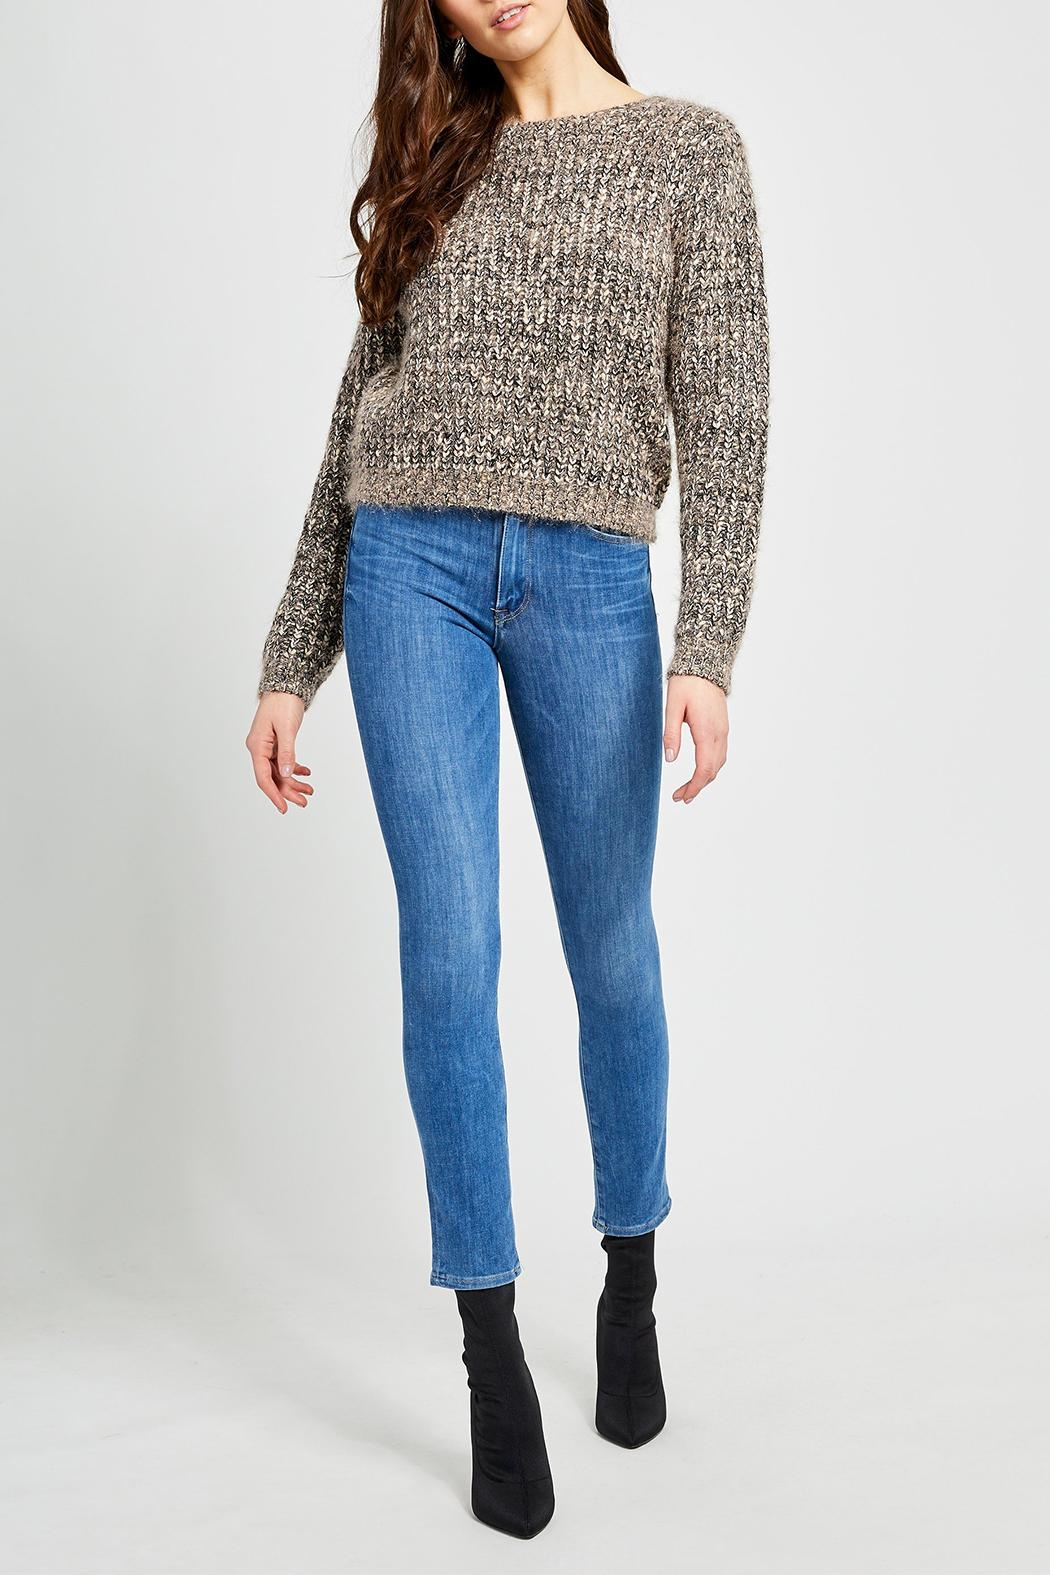 Gentle Fawn Bellatrix Sweater - Front Cropped Image